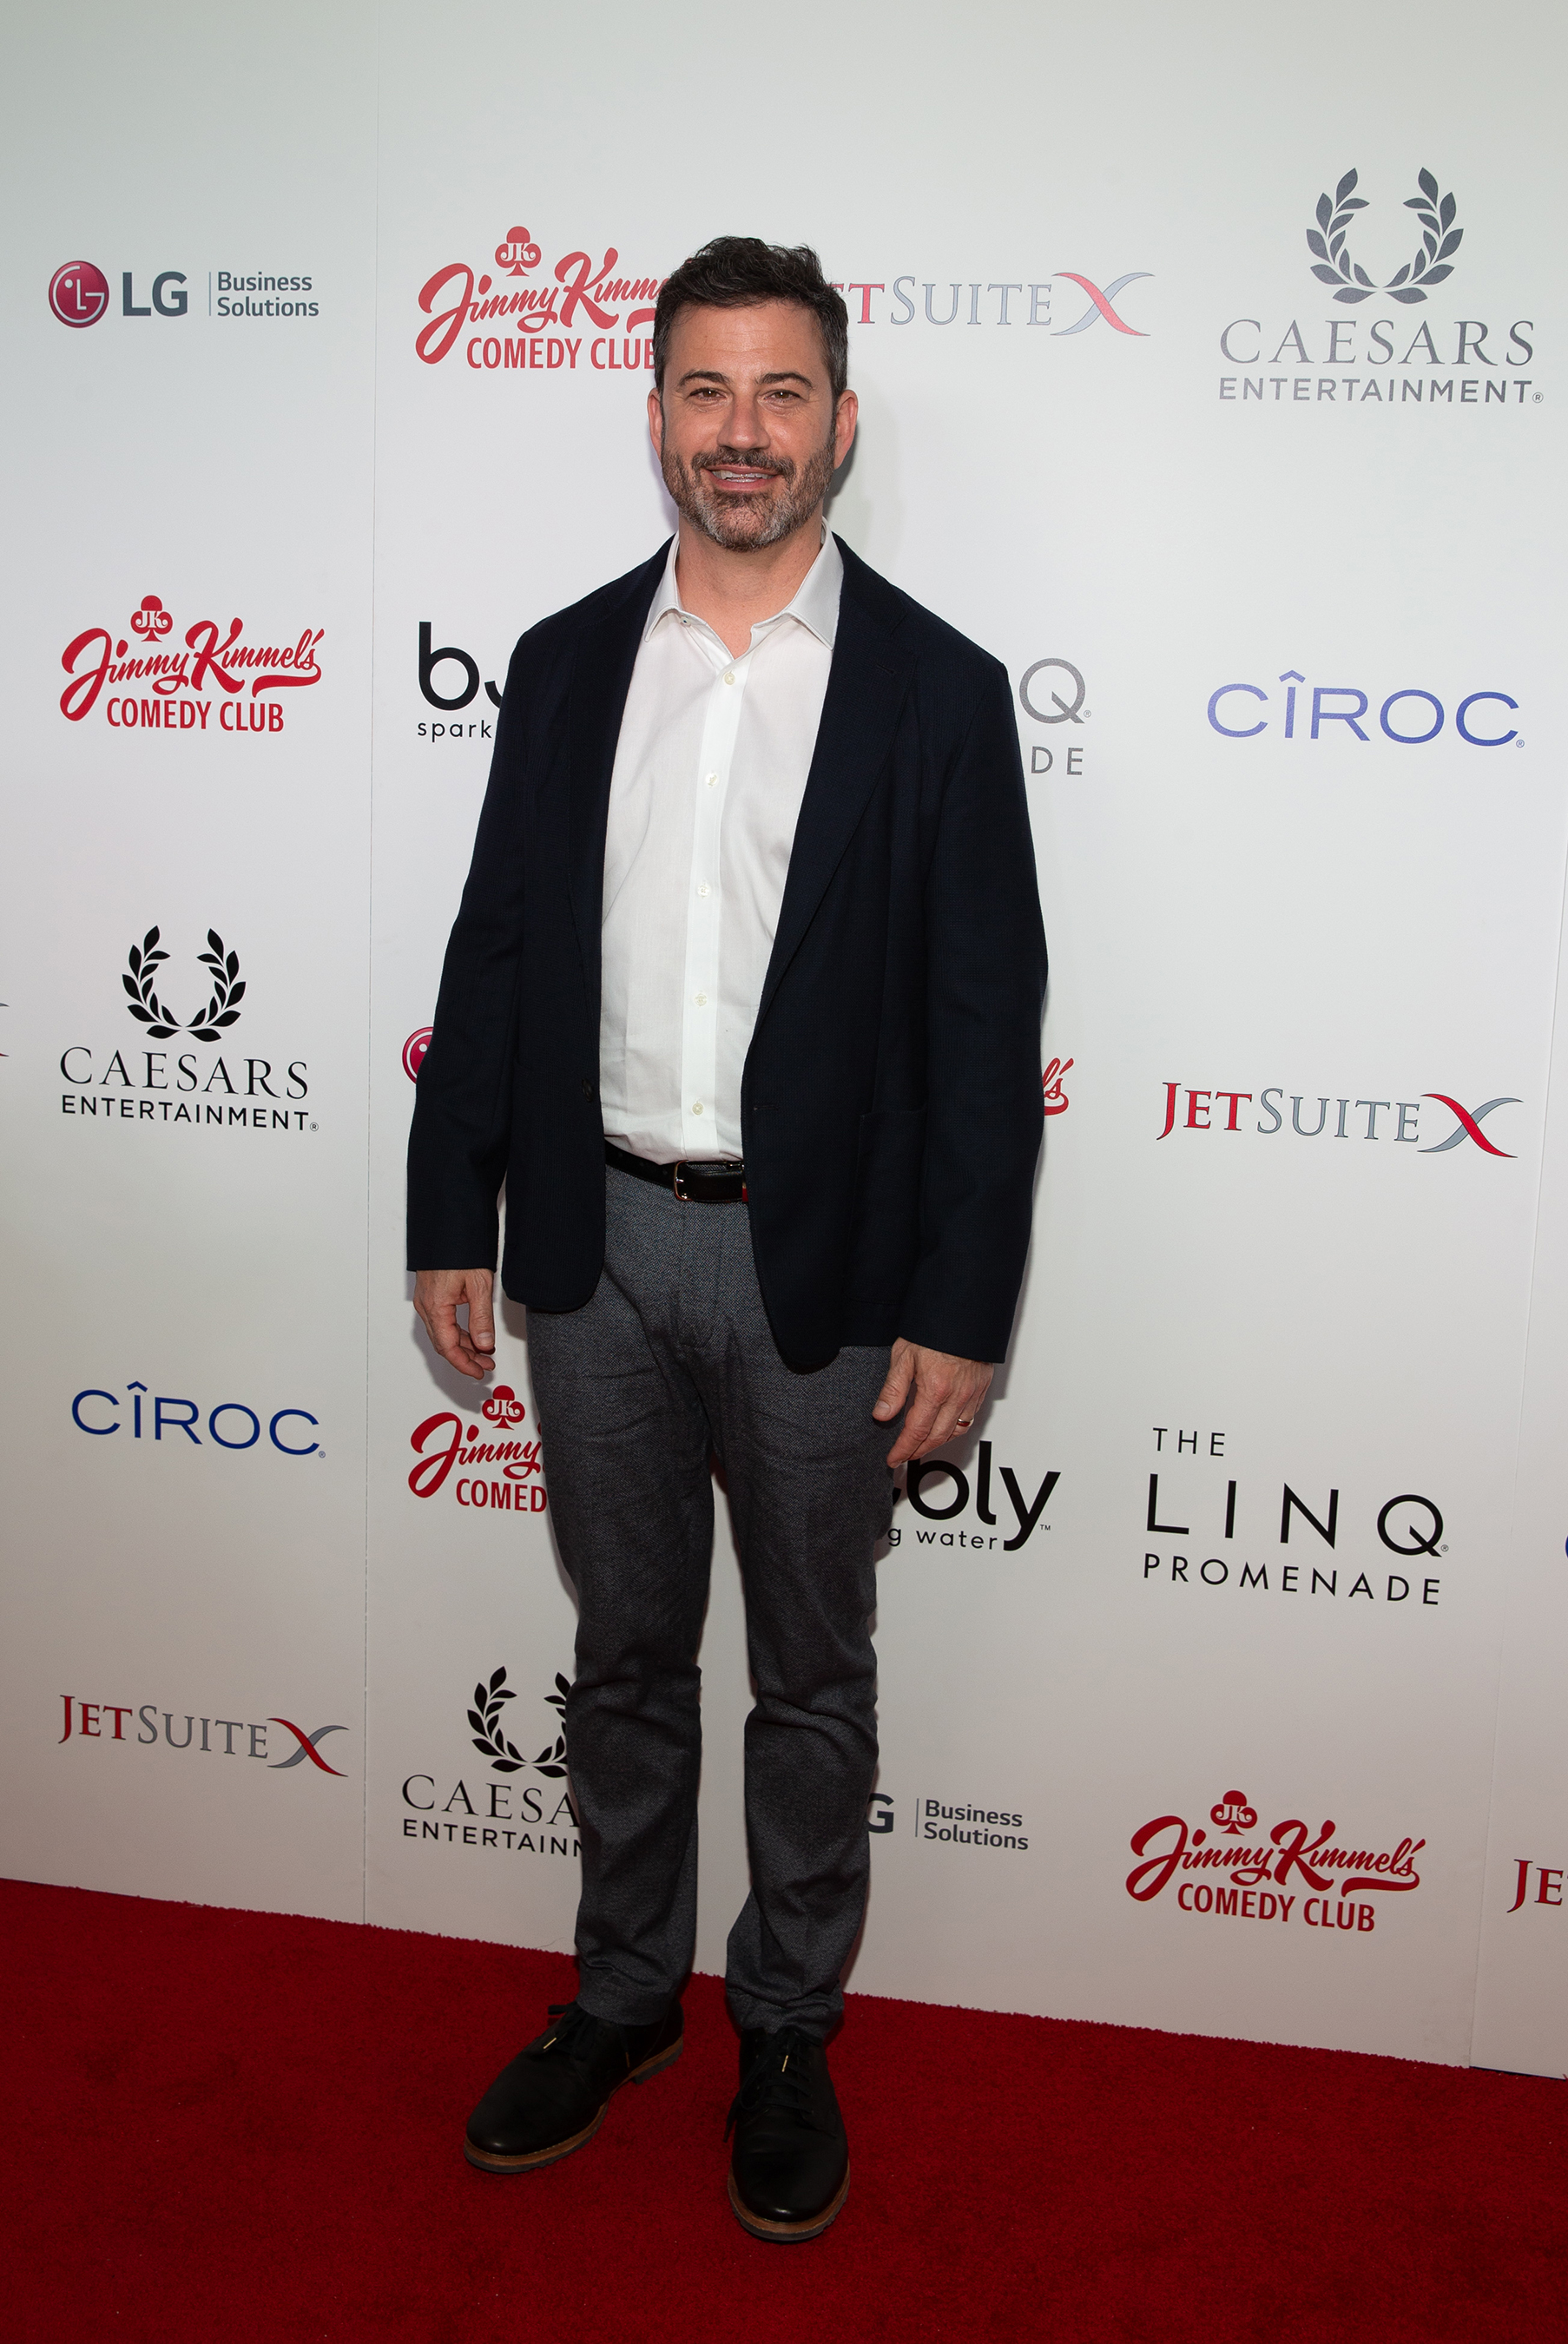 Jimmy Kimmel's Comedy Club Grand Opening (Photo Credit: Kabik Photo Group)